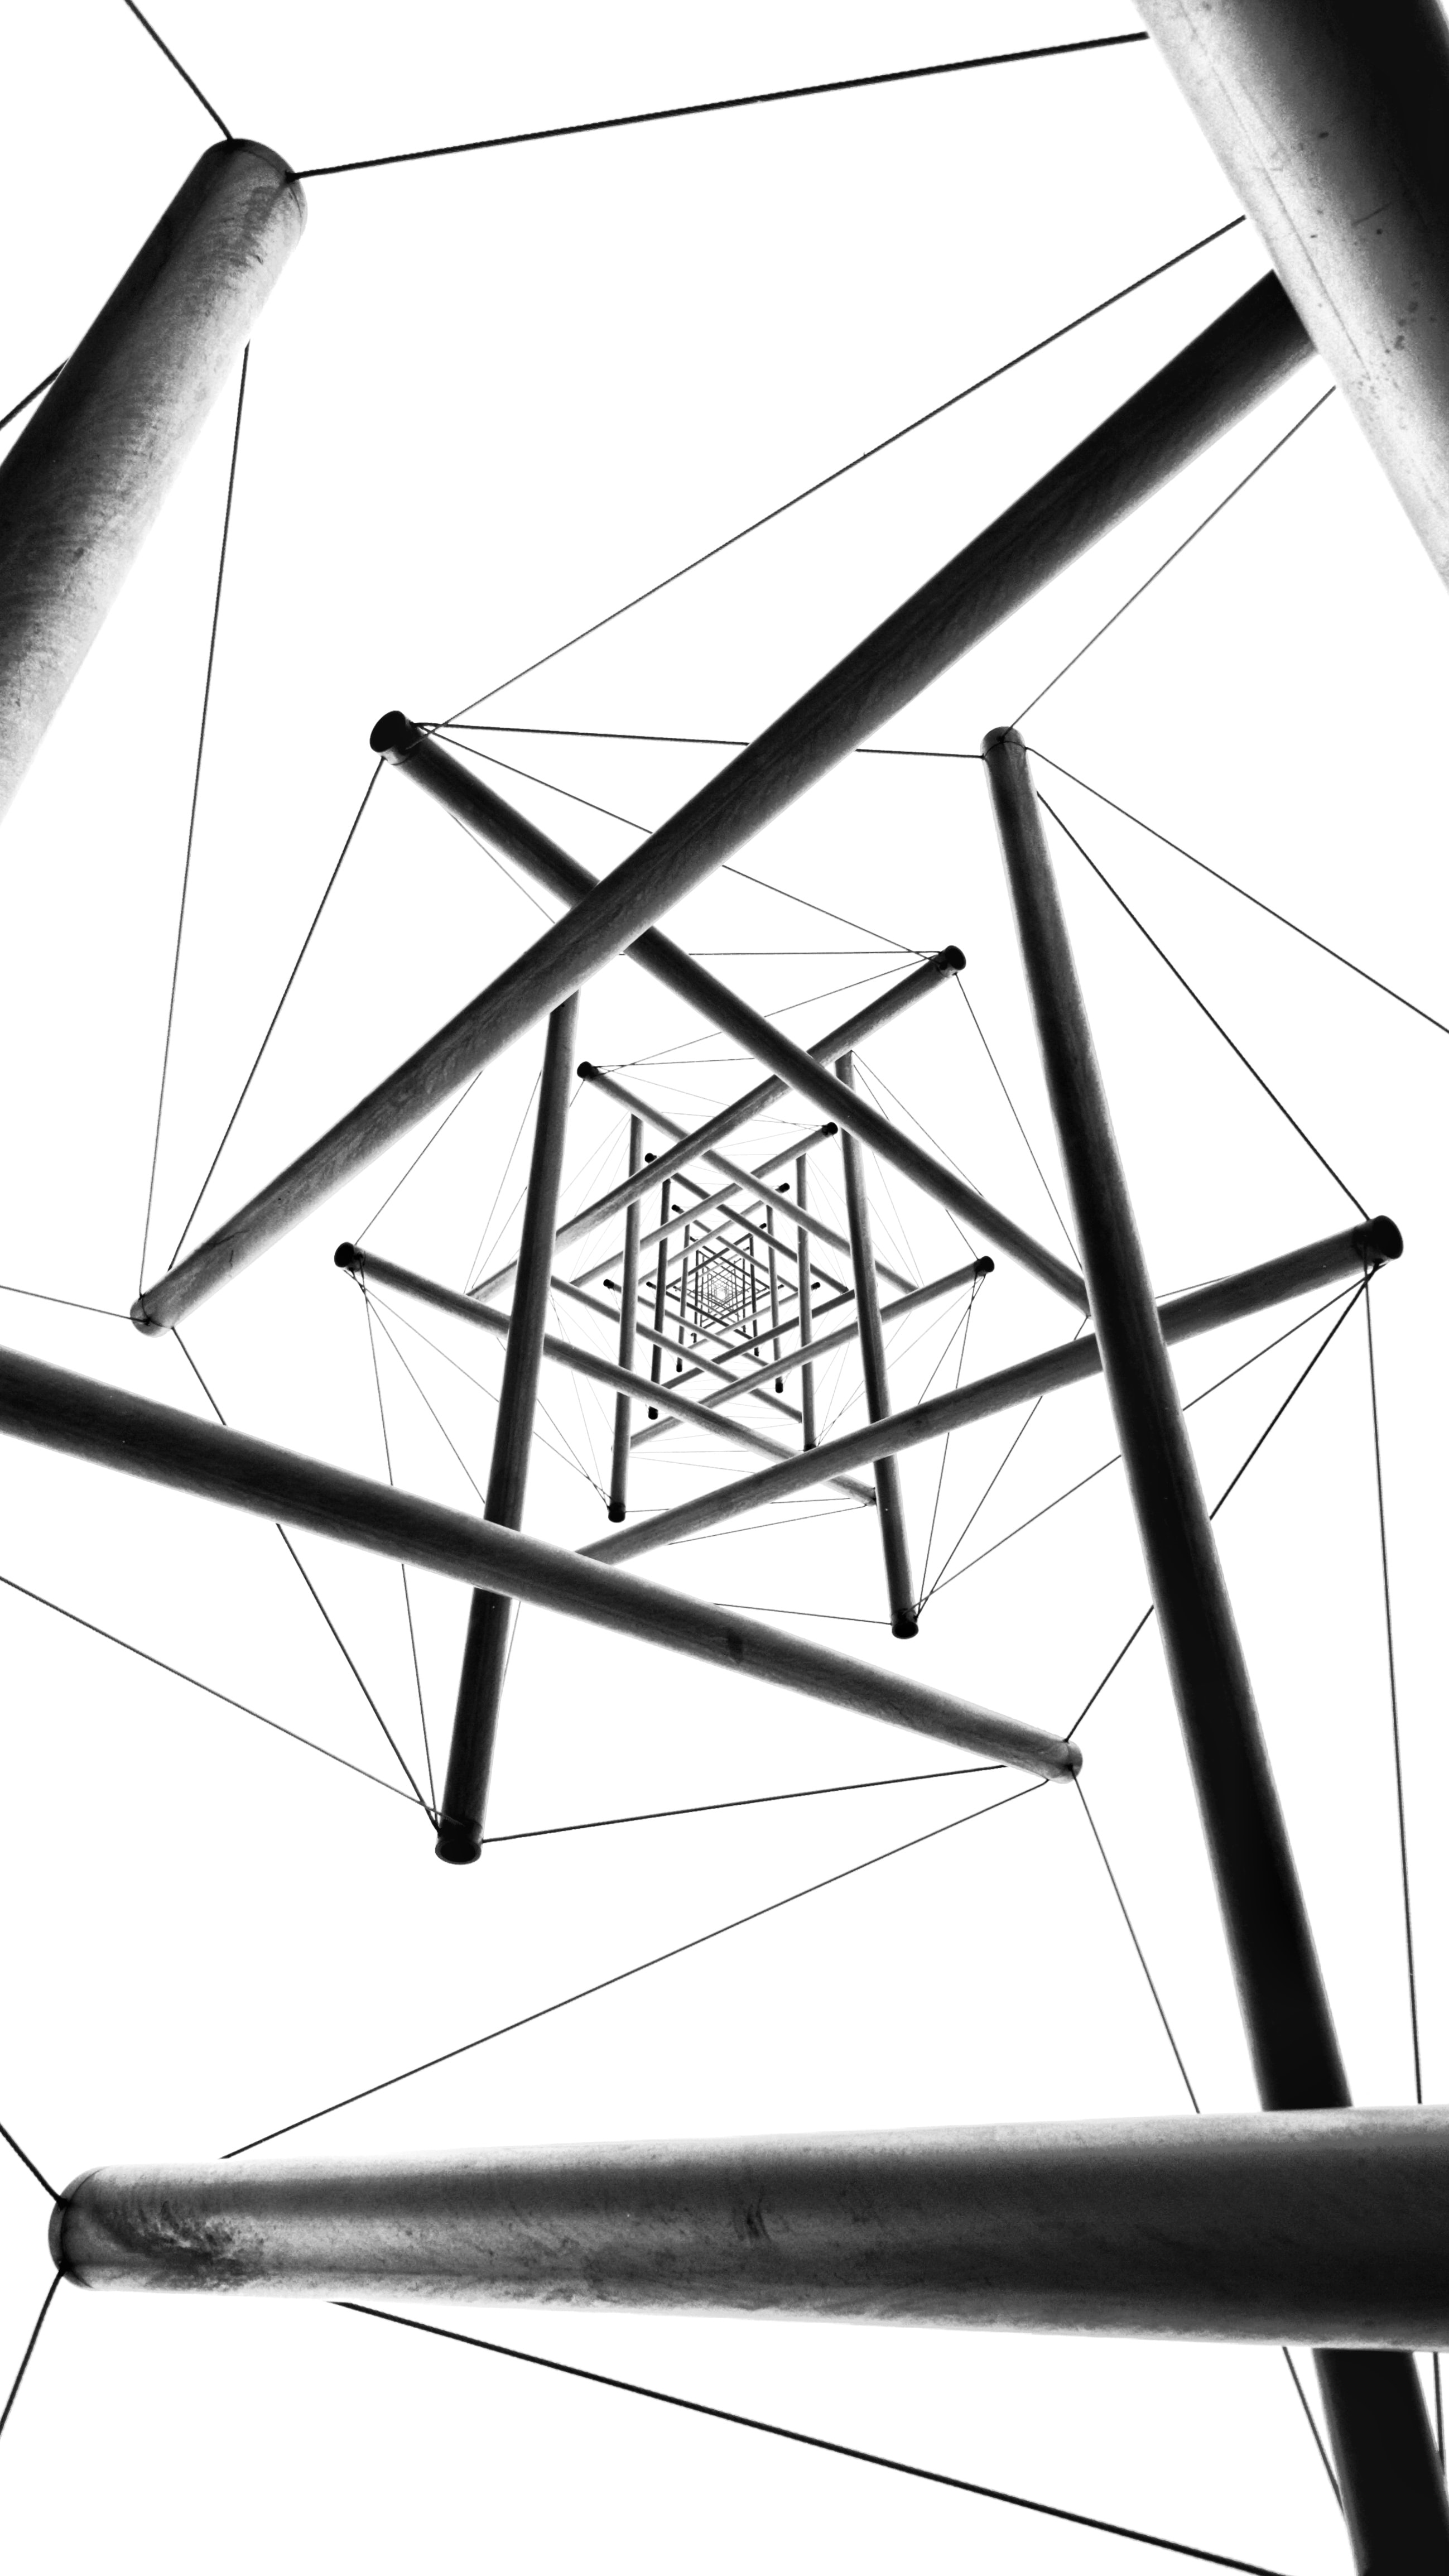 low angle photography of gray metal structure